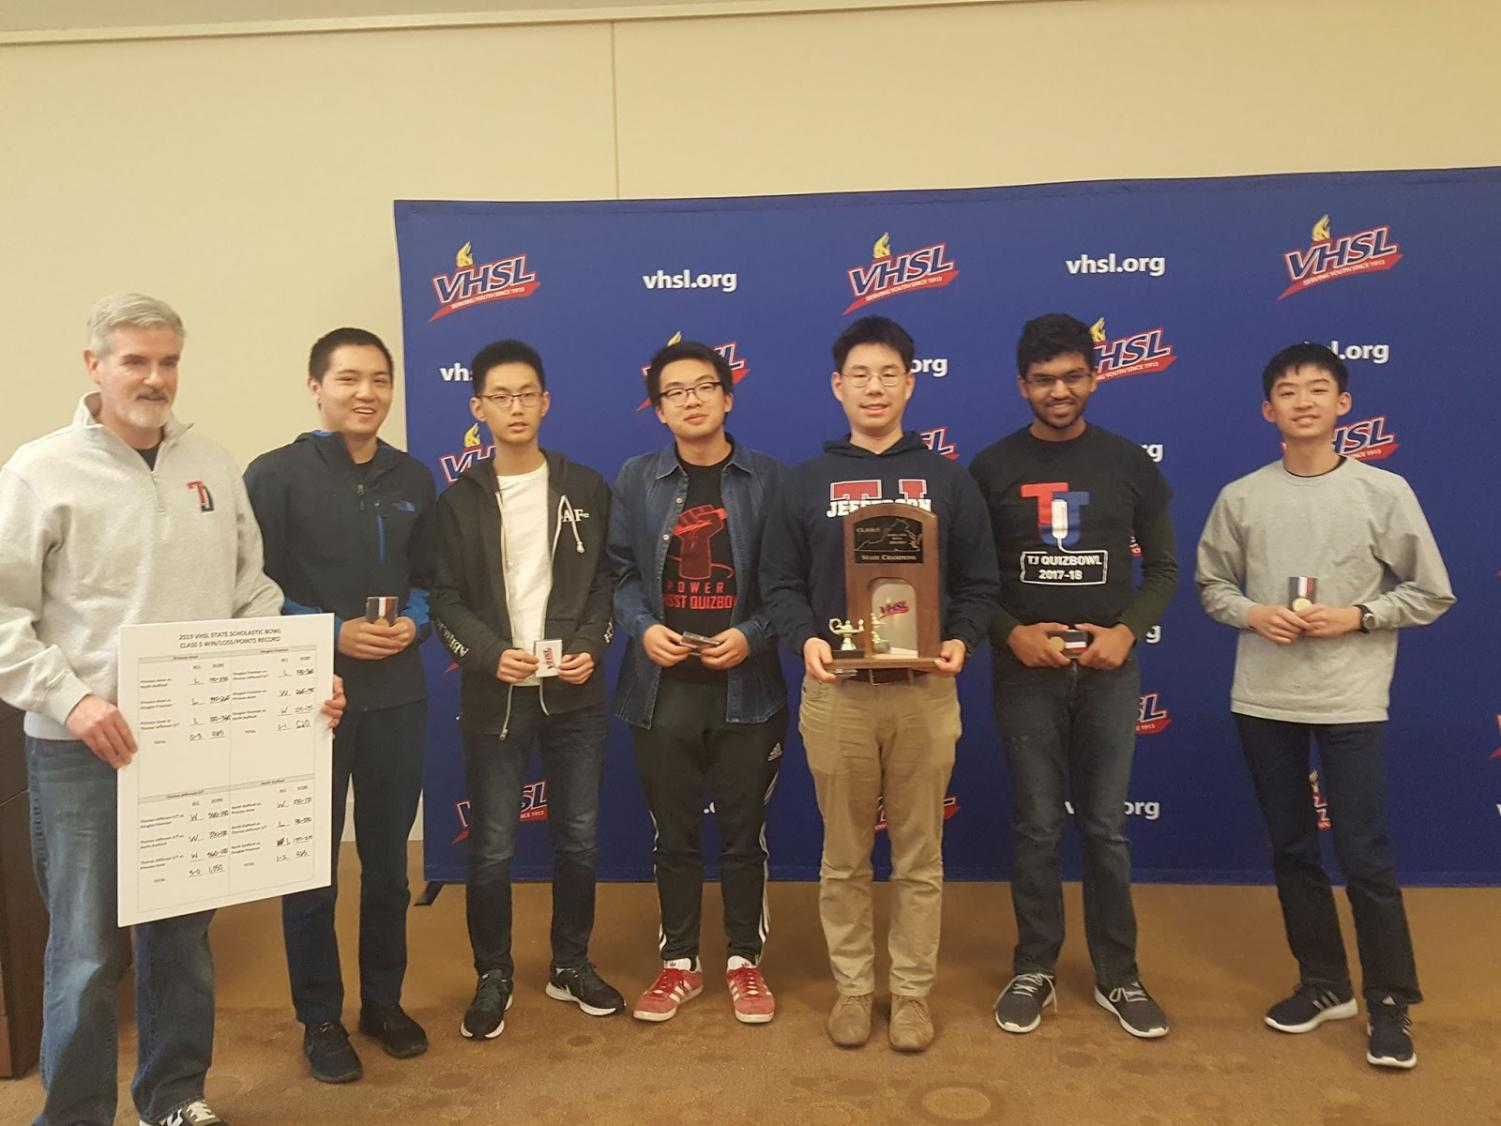 From left to right: club sponsor John Laffey, captain Fred Zhang, James Kuang, Ben Xu, William Wang, Prithvi Nathan, and Joshua Liang. Jefferson's Scholastic Bowl Team stands with their trophy and medals.